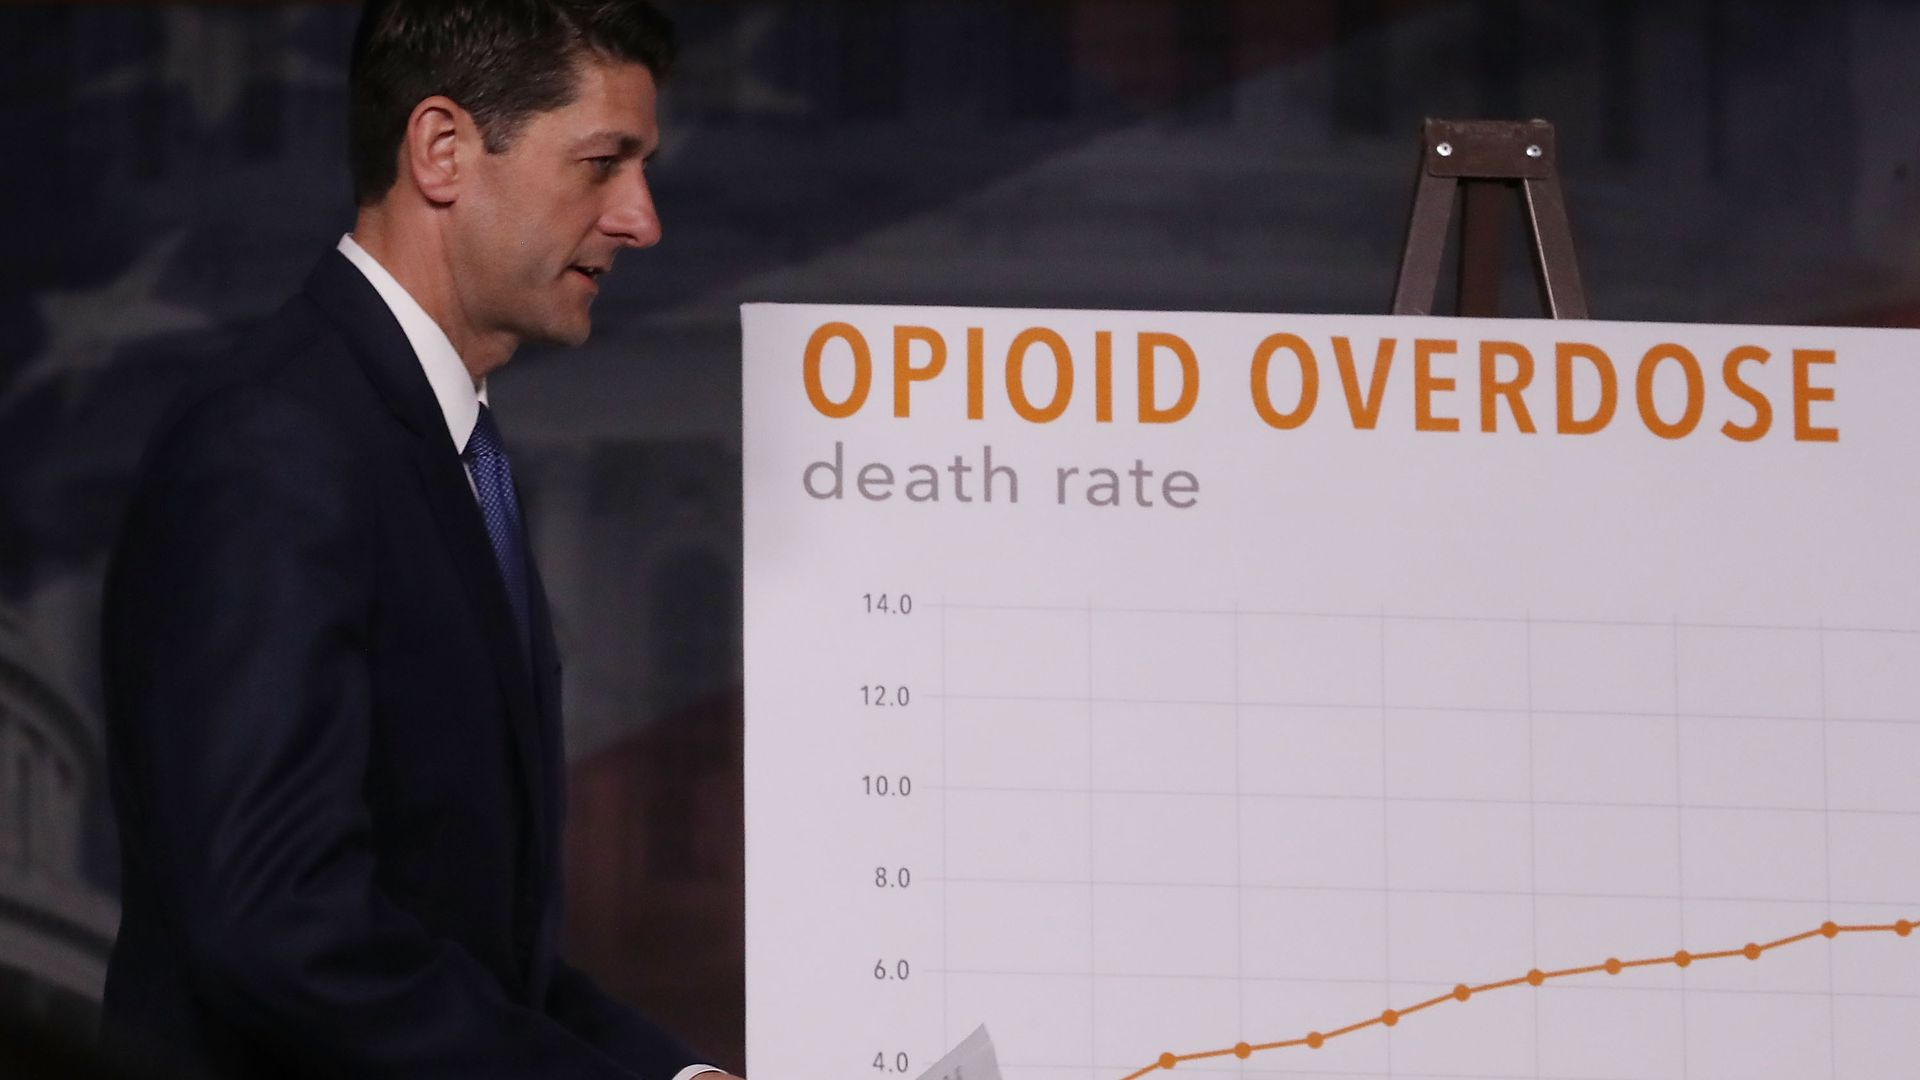 Paul Ryan stands next to a graph depicting an increase in drug overdose deaths.